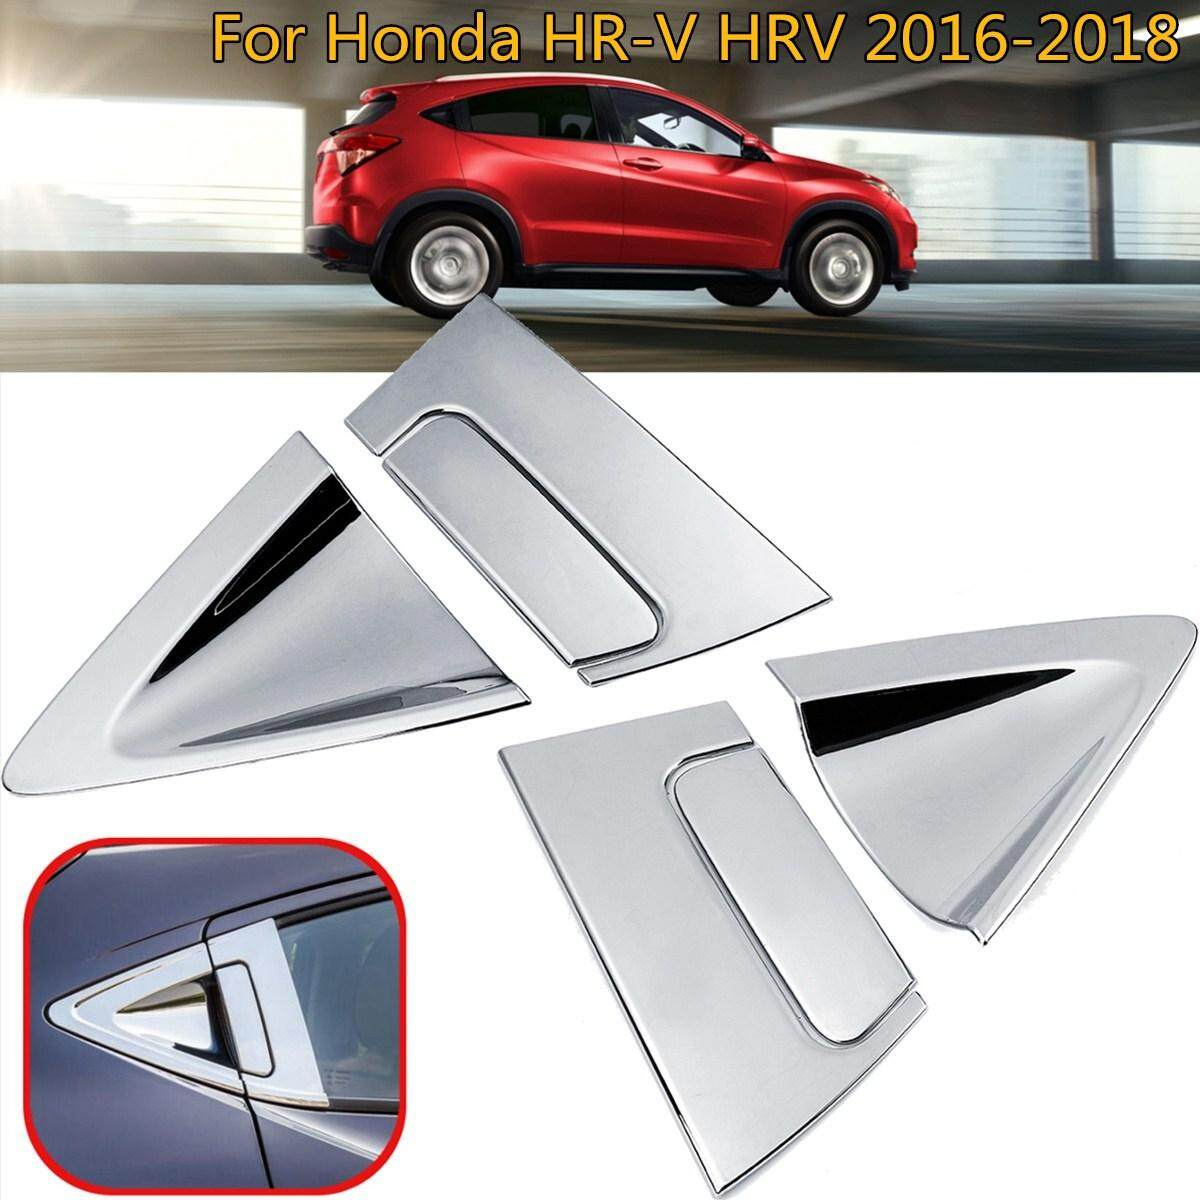 6pcs Chrome Rear Door Handle Cover Bezel Trim For Honda Hr-V Hrv 2014-2018 Abs By Audew.